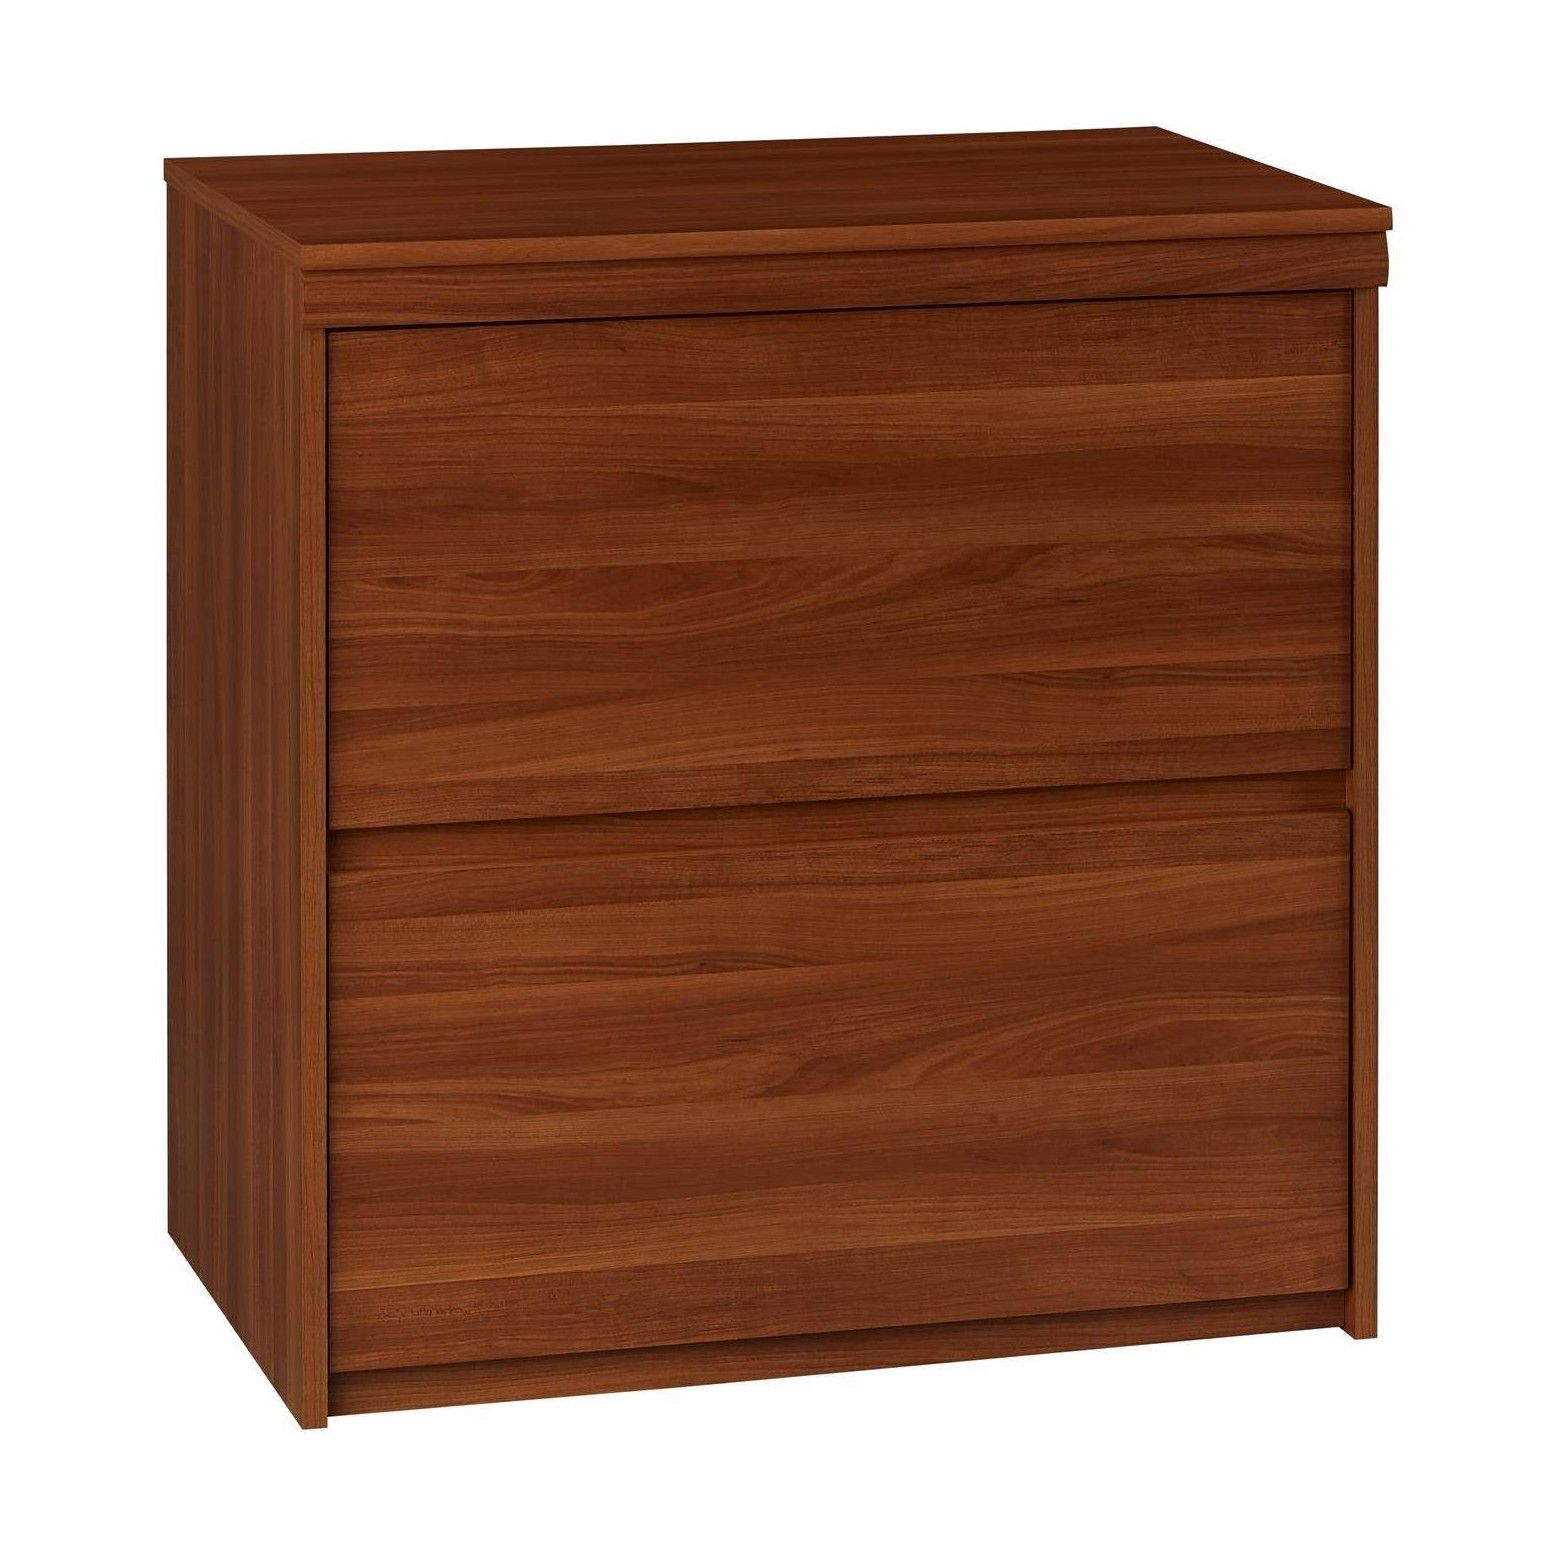 Target For Filing Cabinets You Will Love At Great Low Prices Free Shipping On